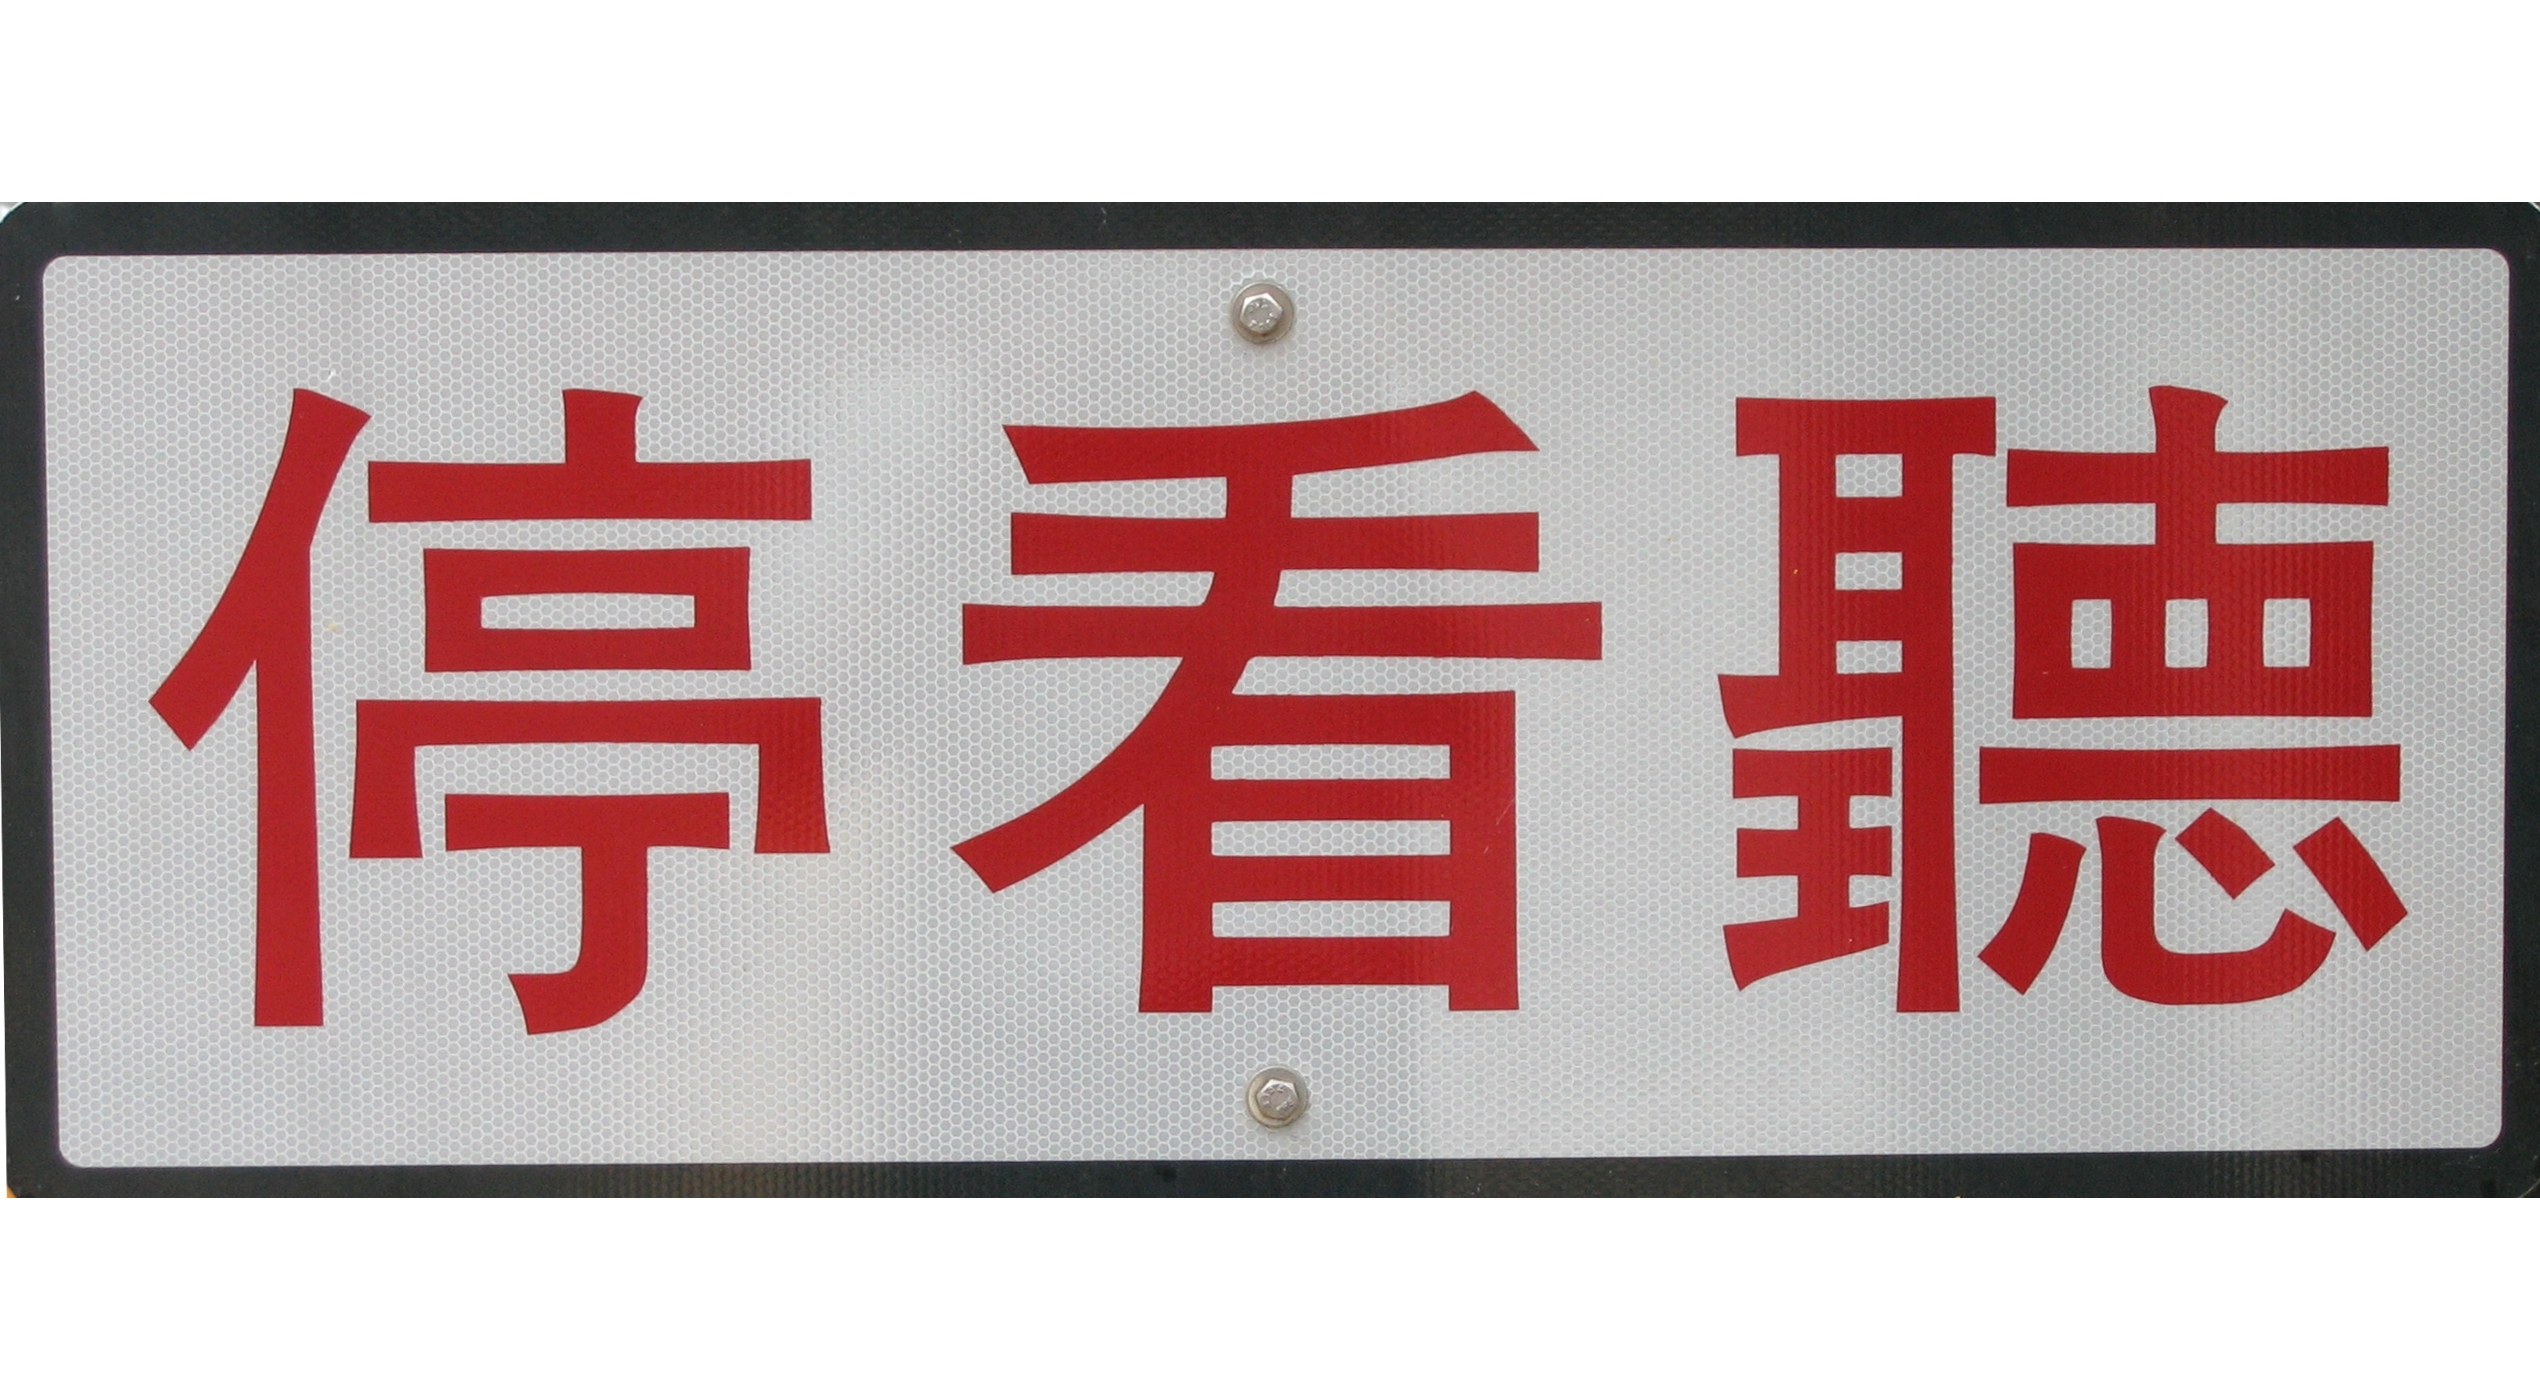 Chinese Train Crossing Sign, Character, Chinese, Crossing, Danger, HQ Photo